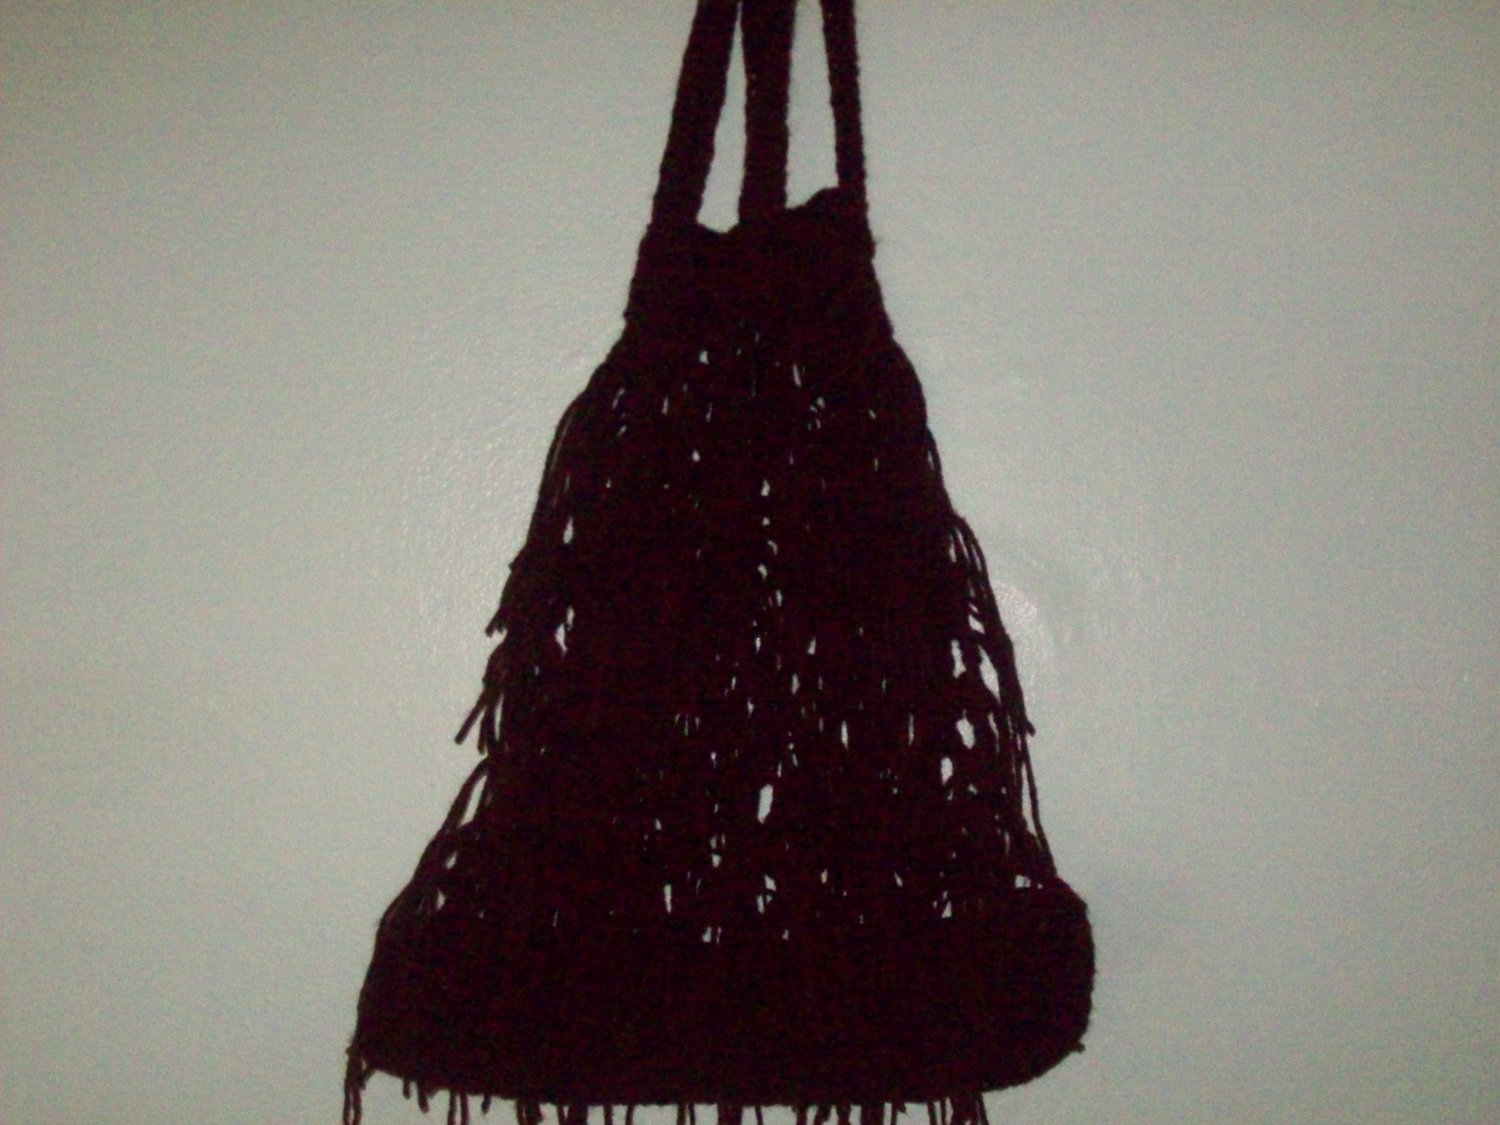 Medium Brown tote bag